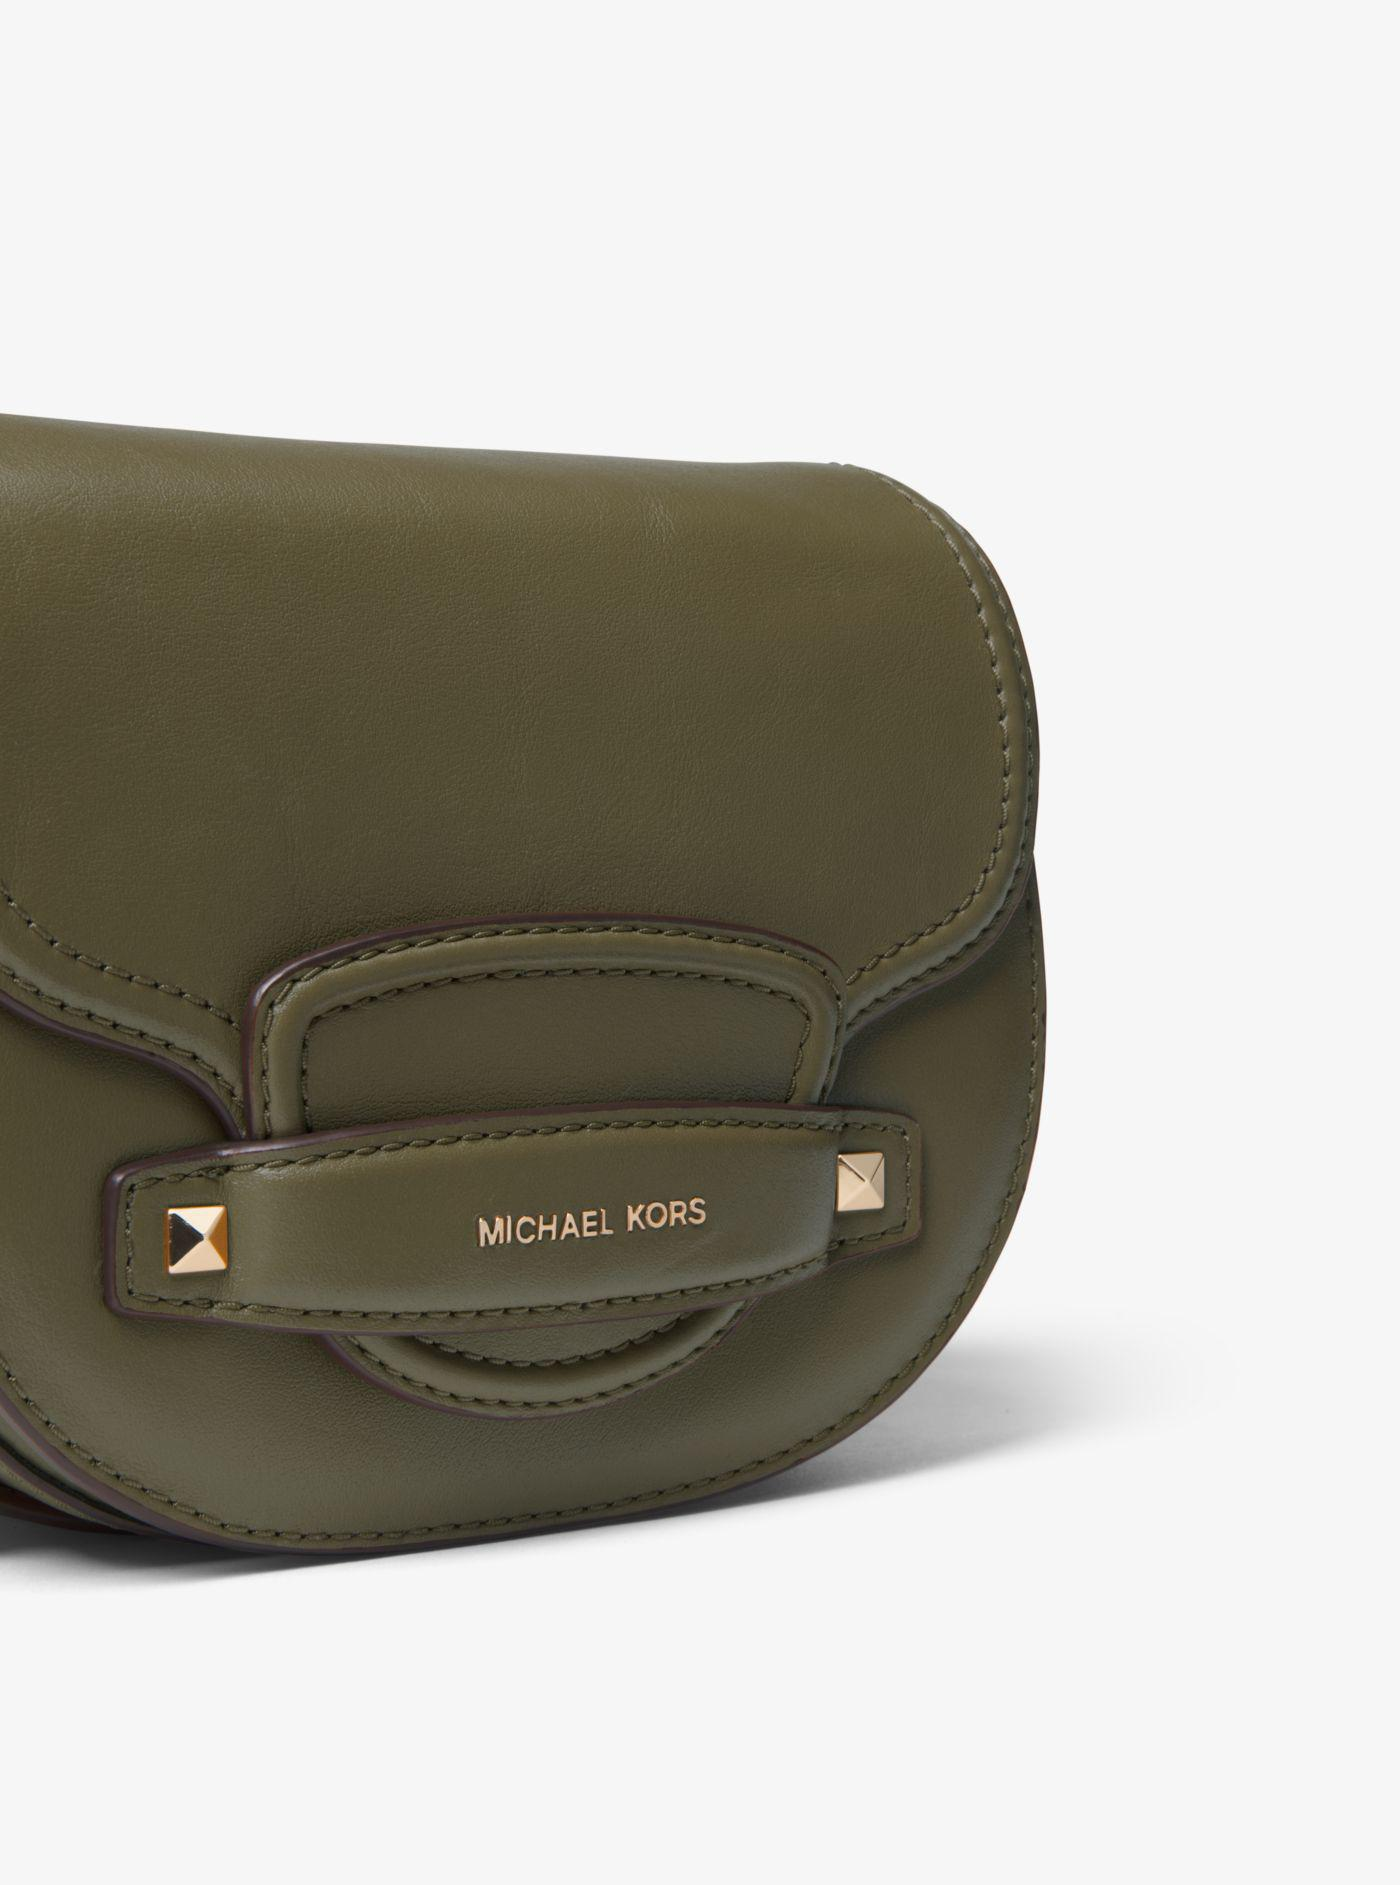 b3fed0db6158 Michael Kors Cary Small Leather Saddle Bag in Green - Lyst